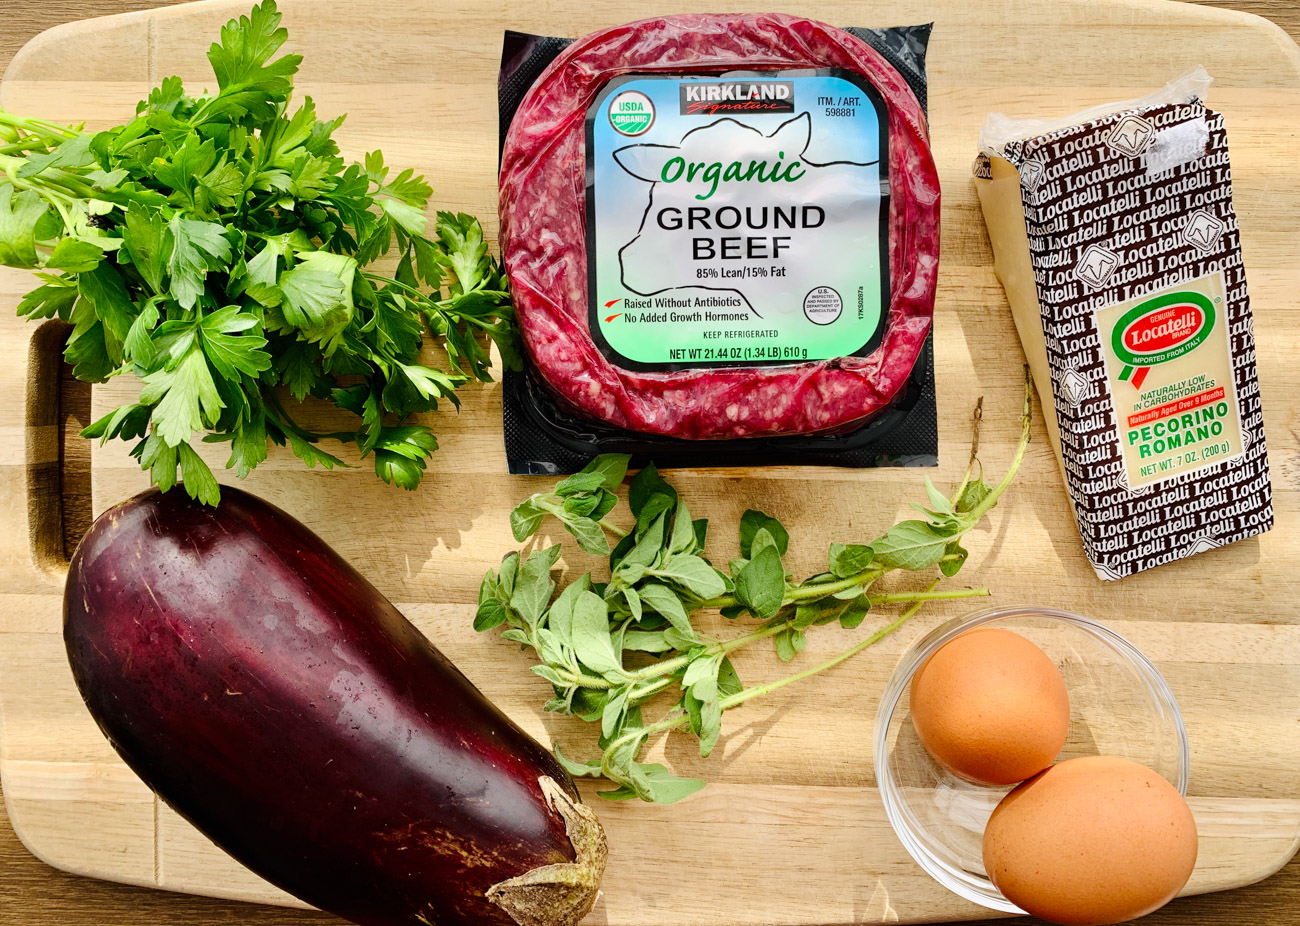 INGREDIENTS FOR MEATBALLS WITH ROASTED EGGPLANT, eggplant, organic ground beef, pecorino romano cheese, eggs, fresh parsley, oregano